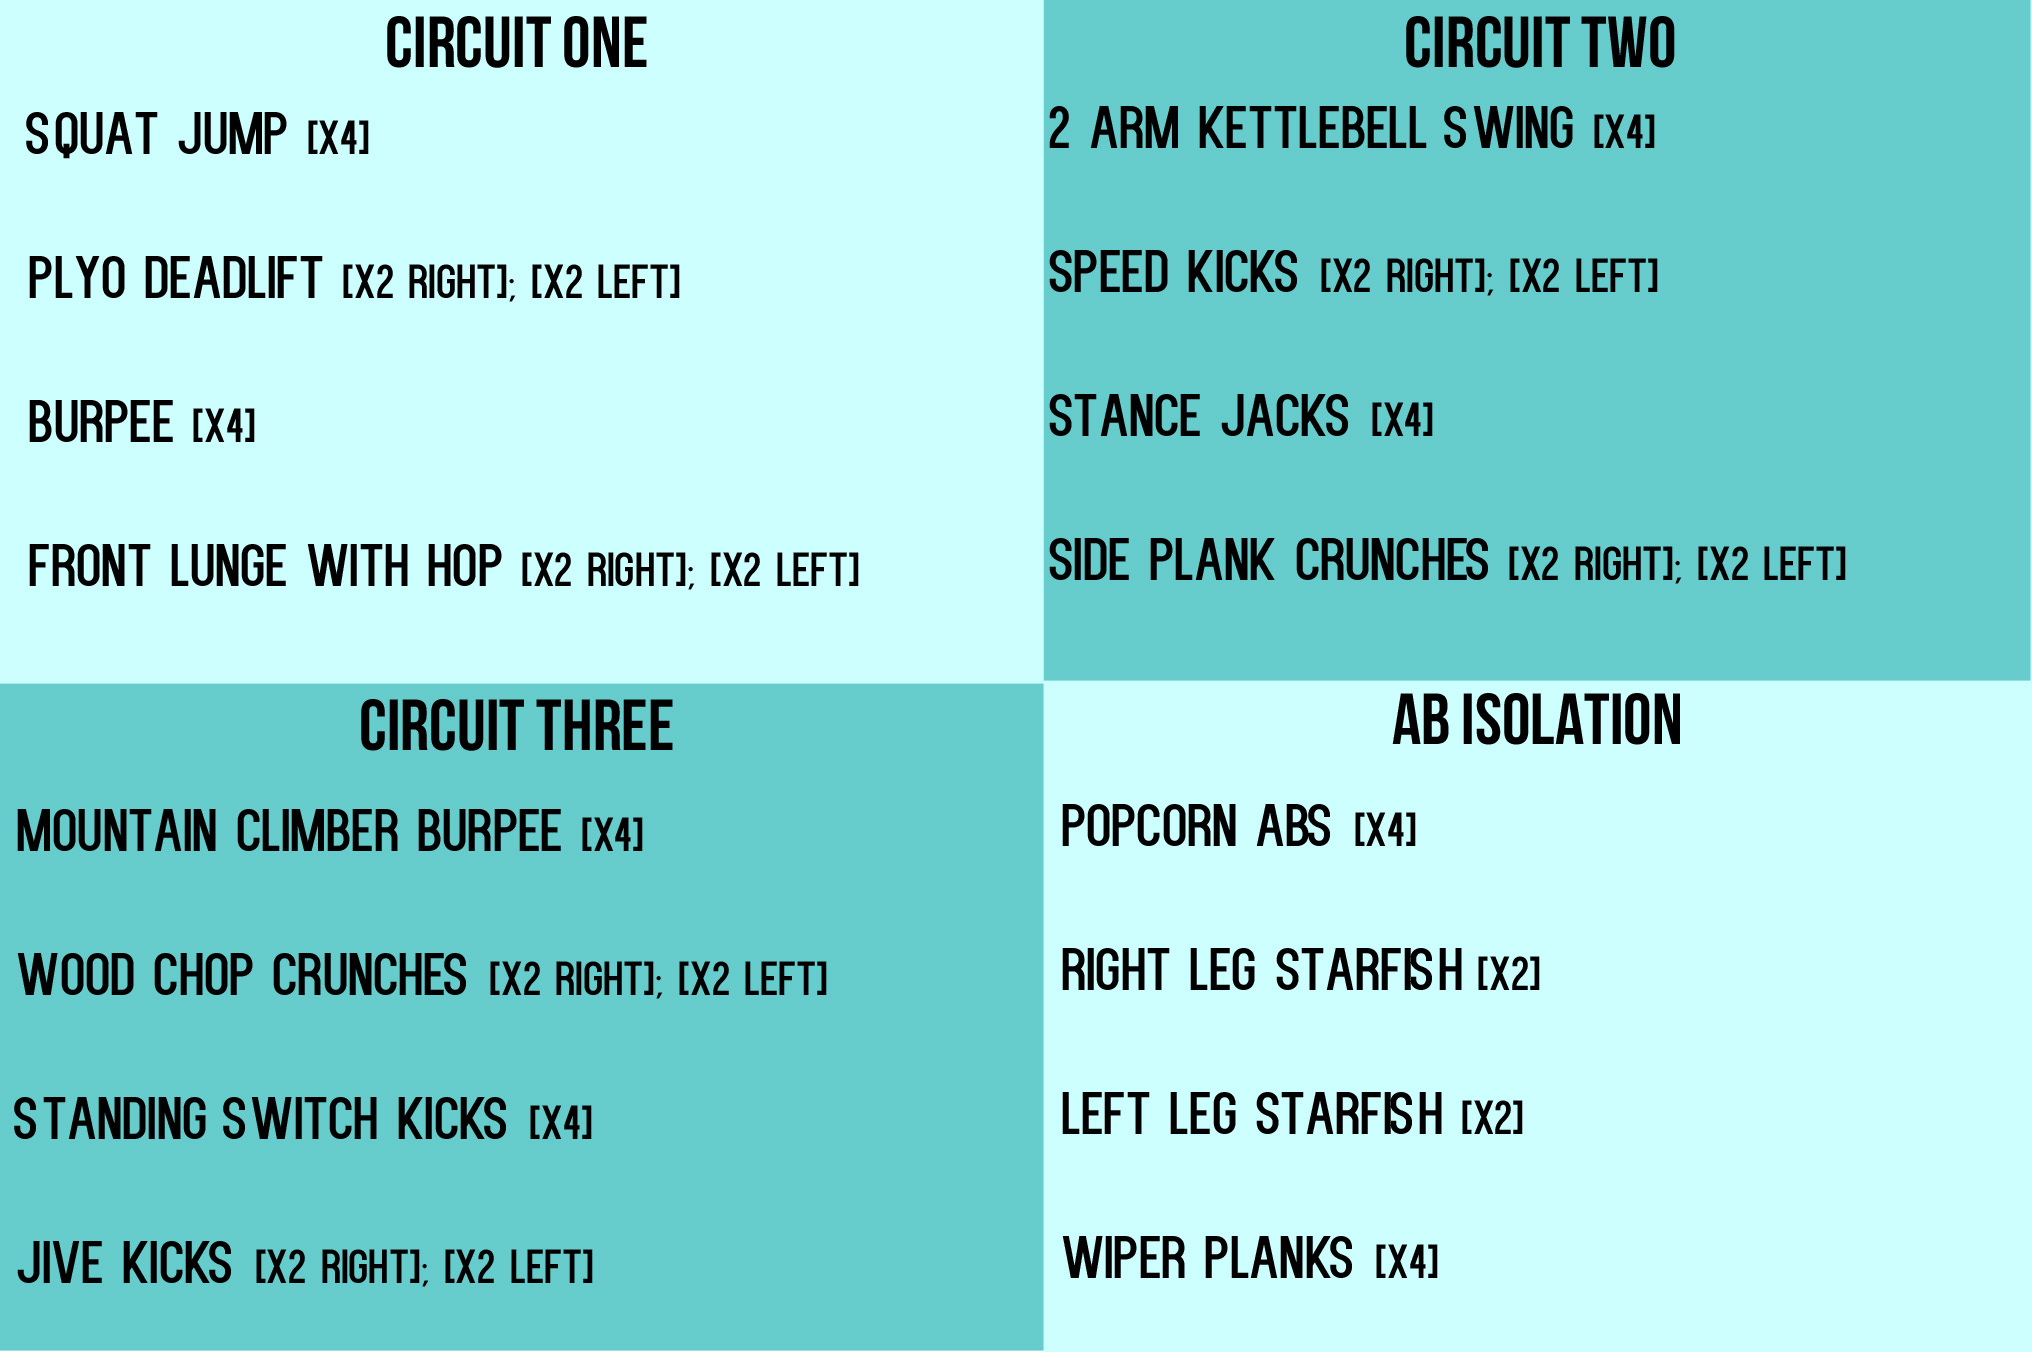 Diets for weight loss and toning image 1